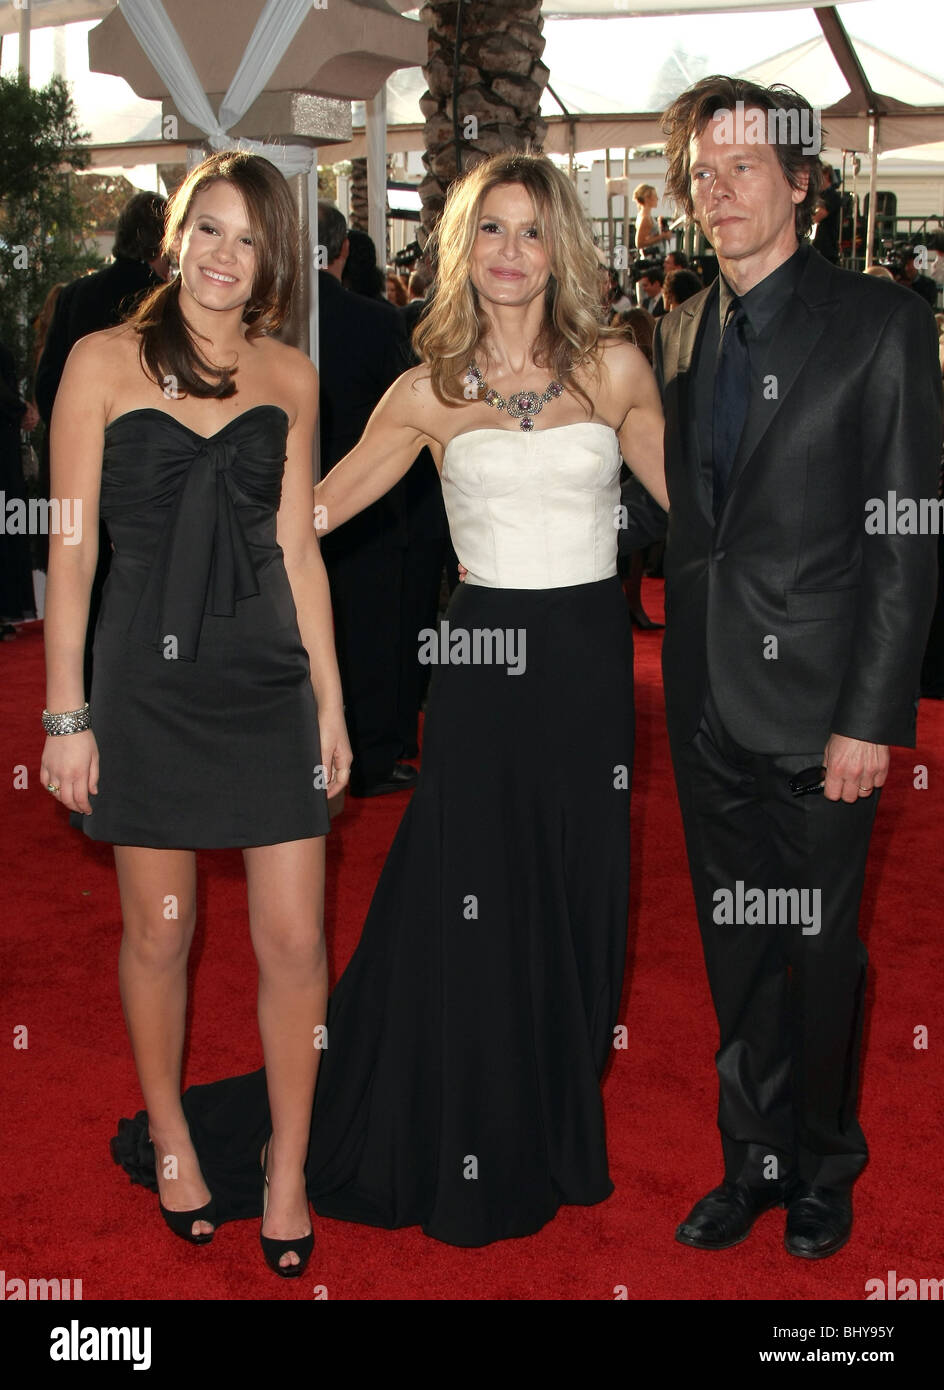 SOSIE BACON KYRA SEDGWICK KEVIN BACON 15TH ANNUAL SCREEN ...